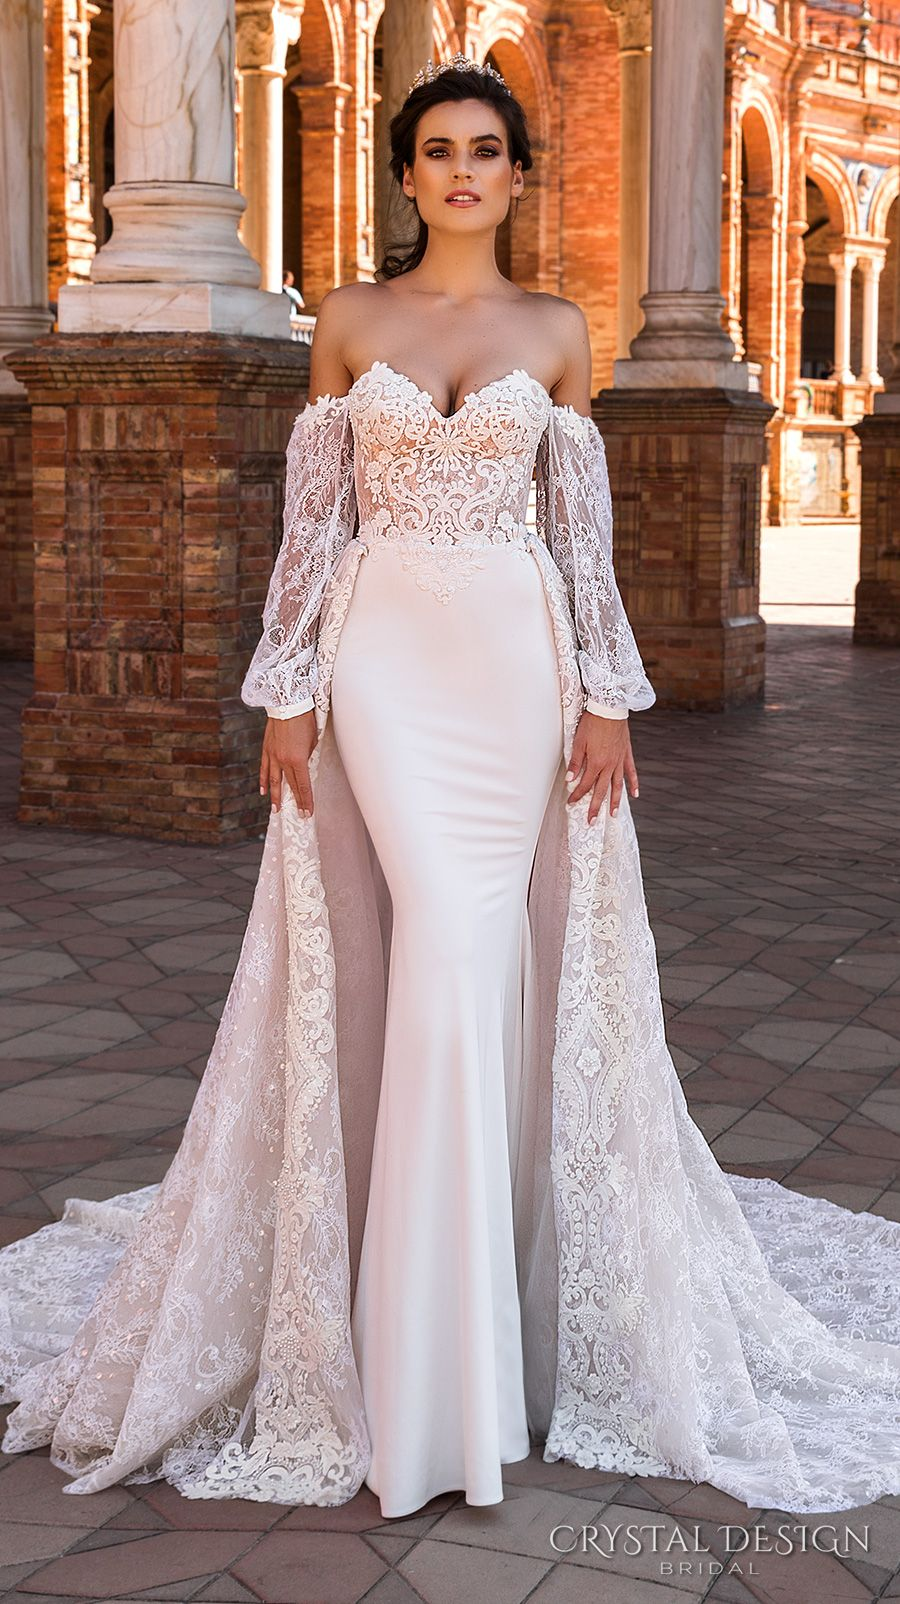 Wedding dress with long train  Beautiful Wedding Dresses from the  Crystal Design Collection